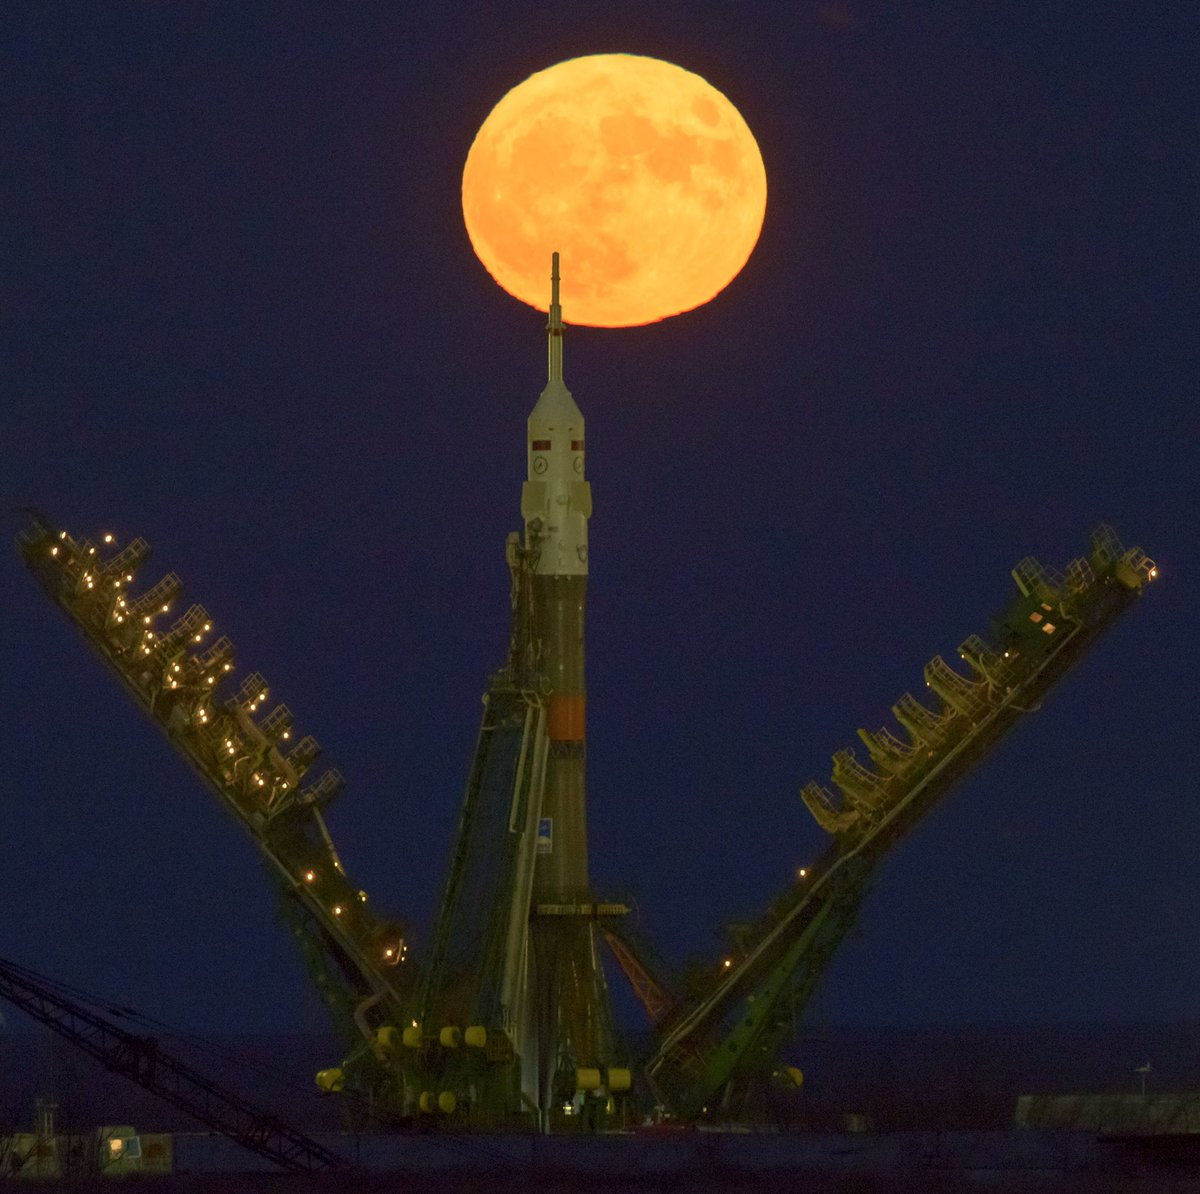 23 spectacular photos of the largest supermoon in 70 years